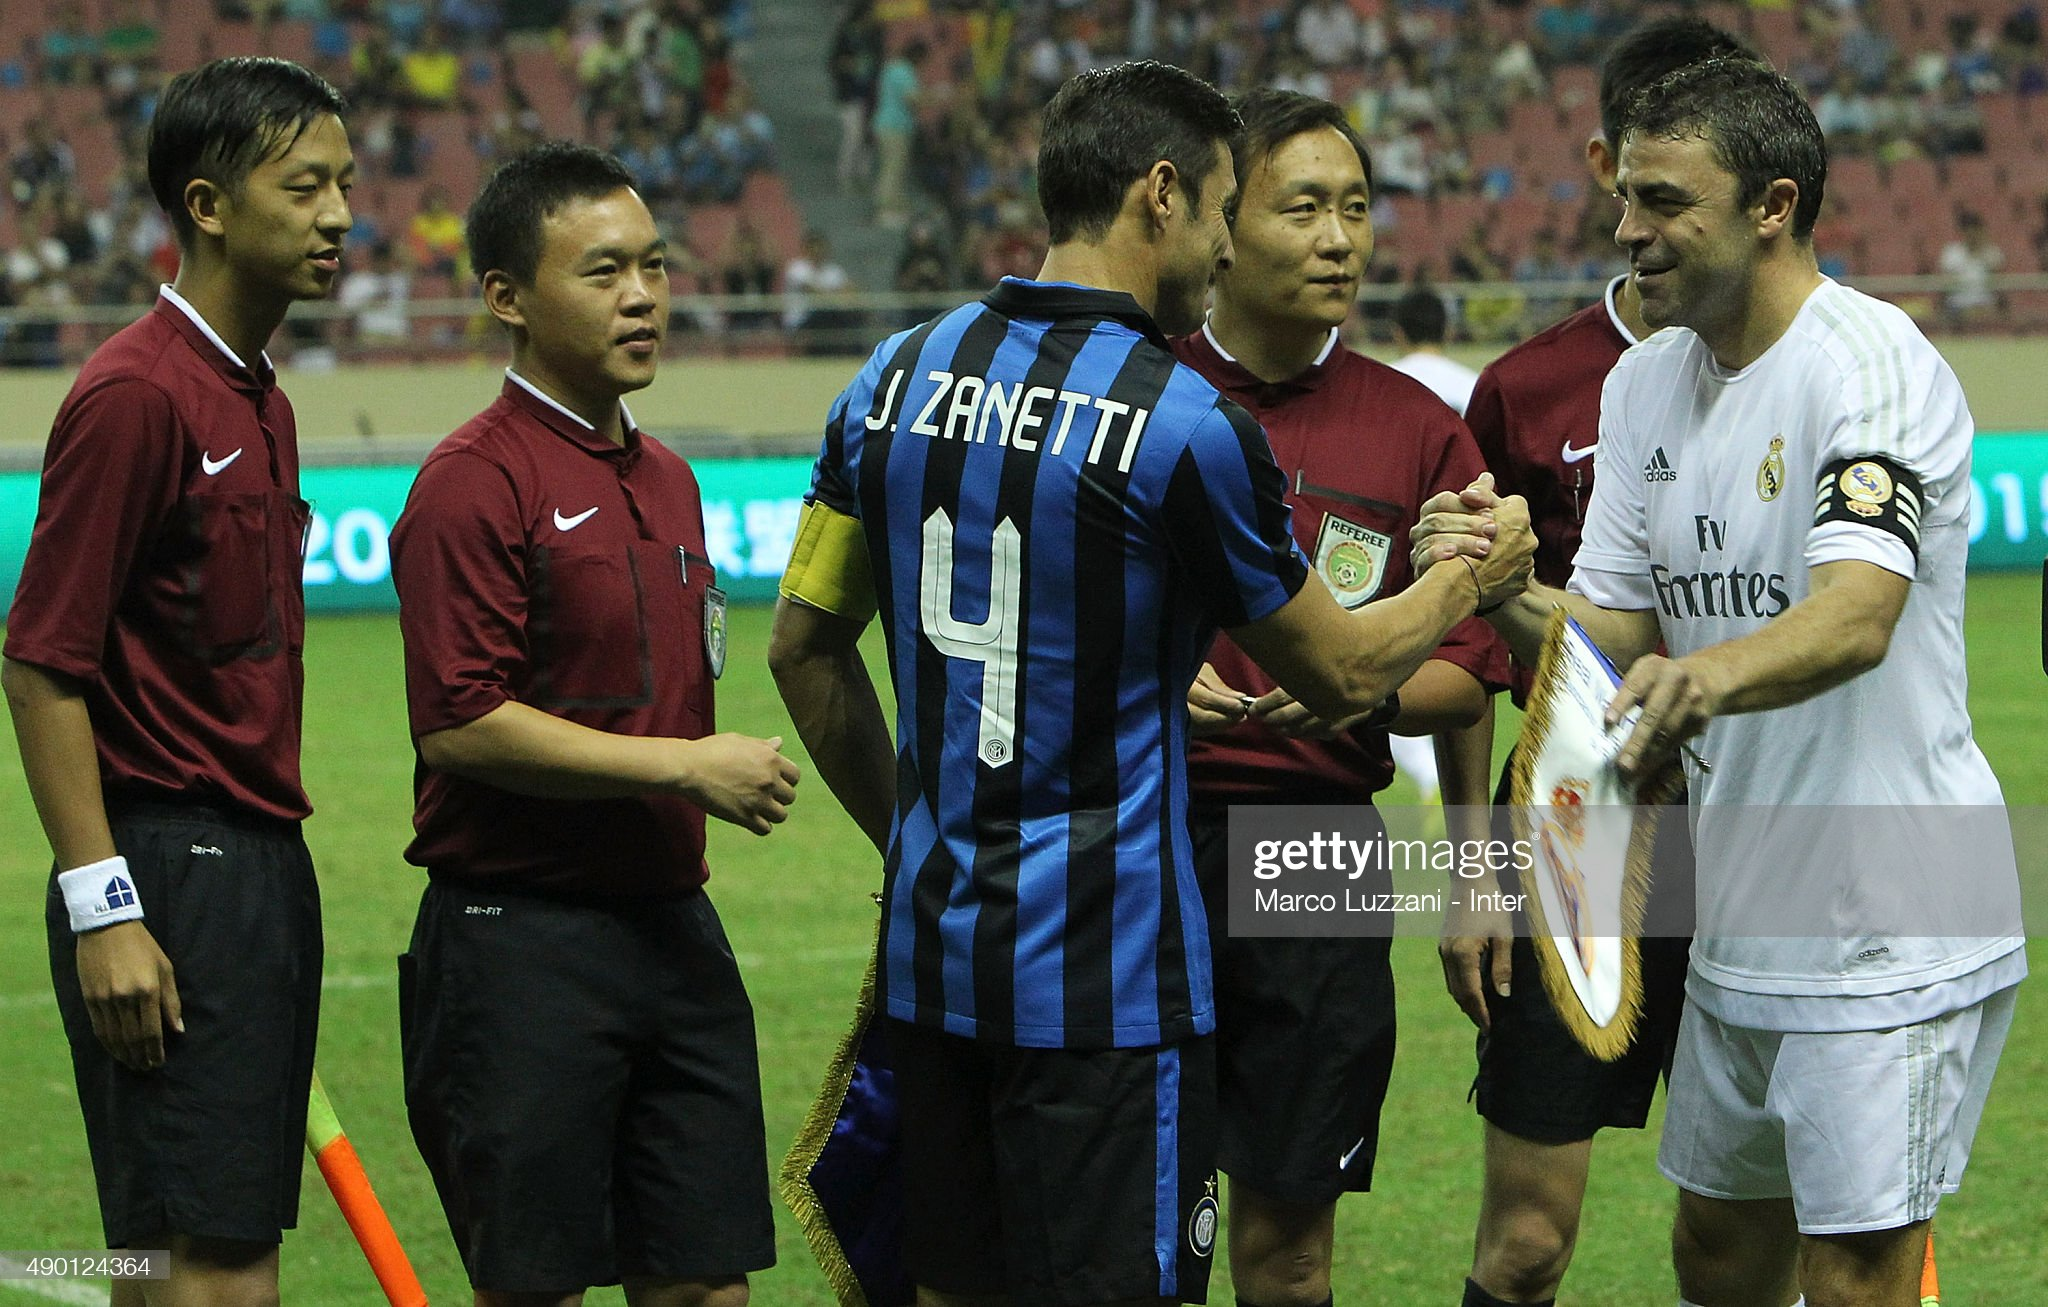 ¿Cuánto mide Manolo Sanchis? - Altura Javier-zanetti-of-inter-forever-shakes-hands-with-manuel-sanchis-of-picture-id490124364?s=2048x2048